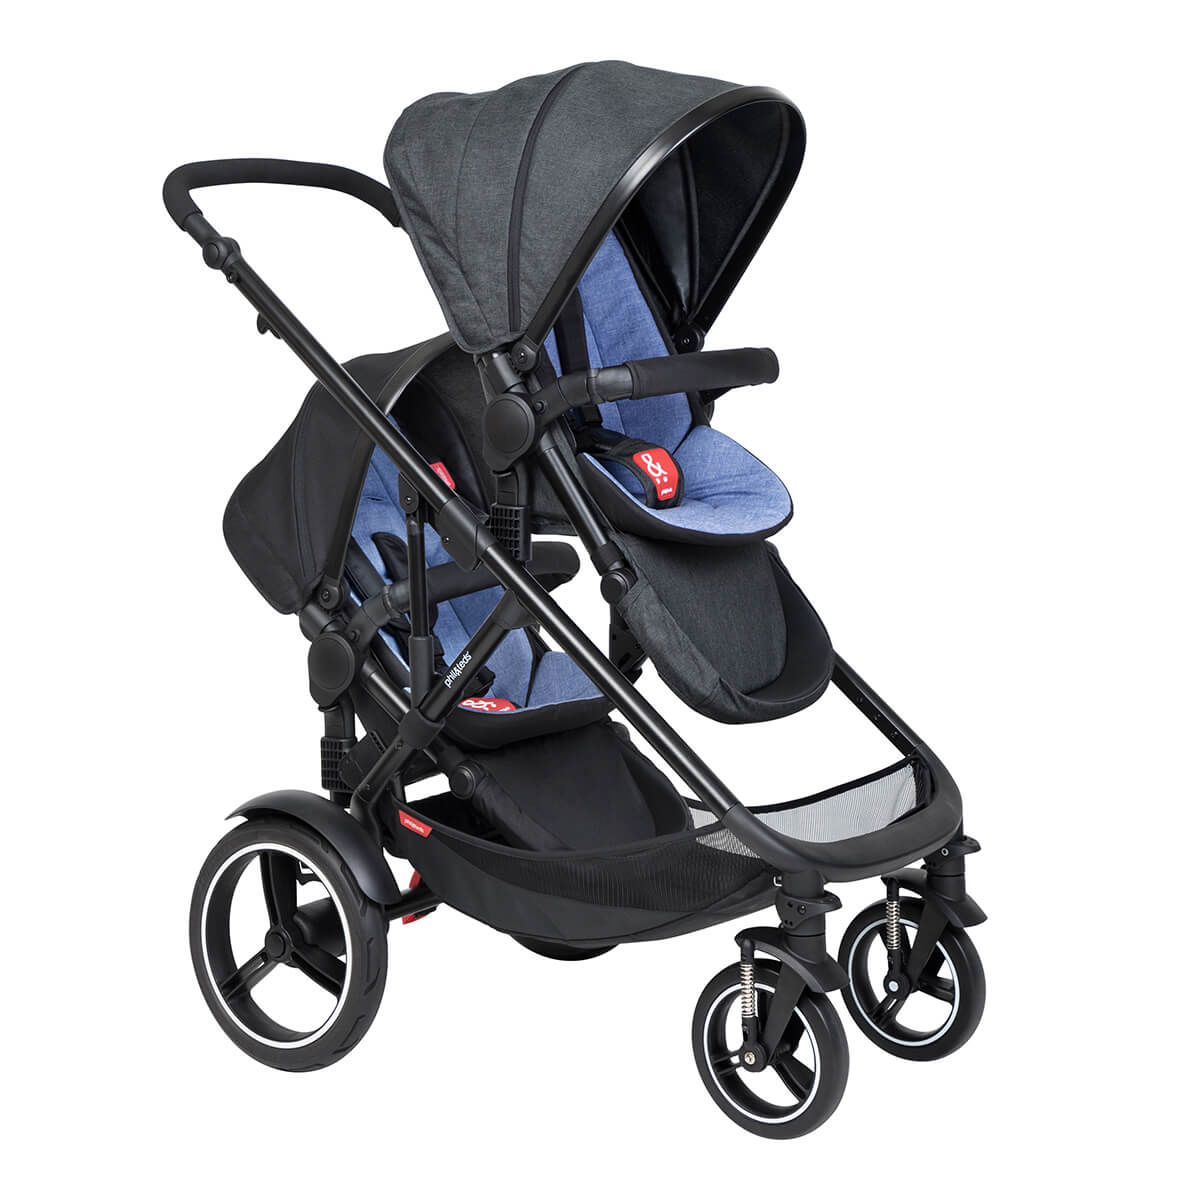 https://cdn.accentuate.io/4509529276504/19272668348504/philteds-voyager-inline-buggy-with-double-kit-in-rear-in-sky-blue-colour-v1626484781665.jpg?1200x1200